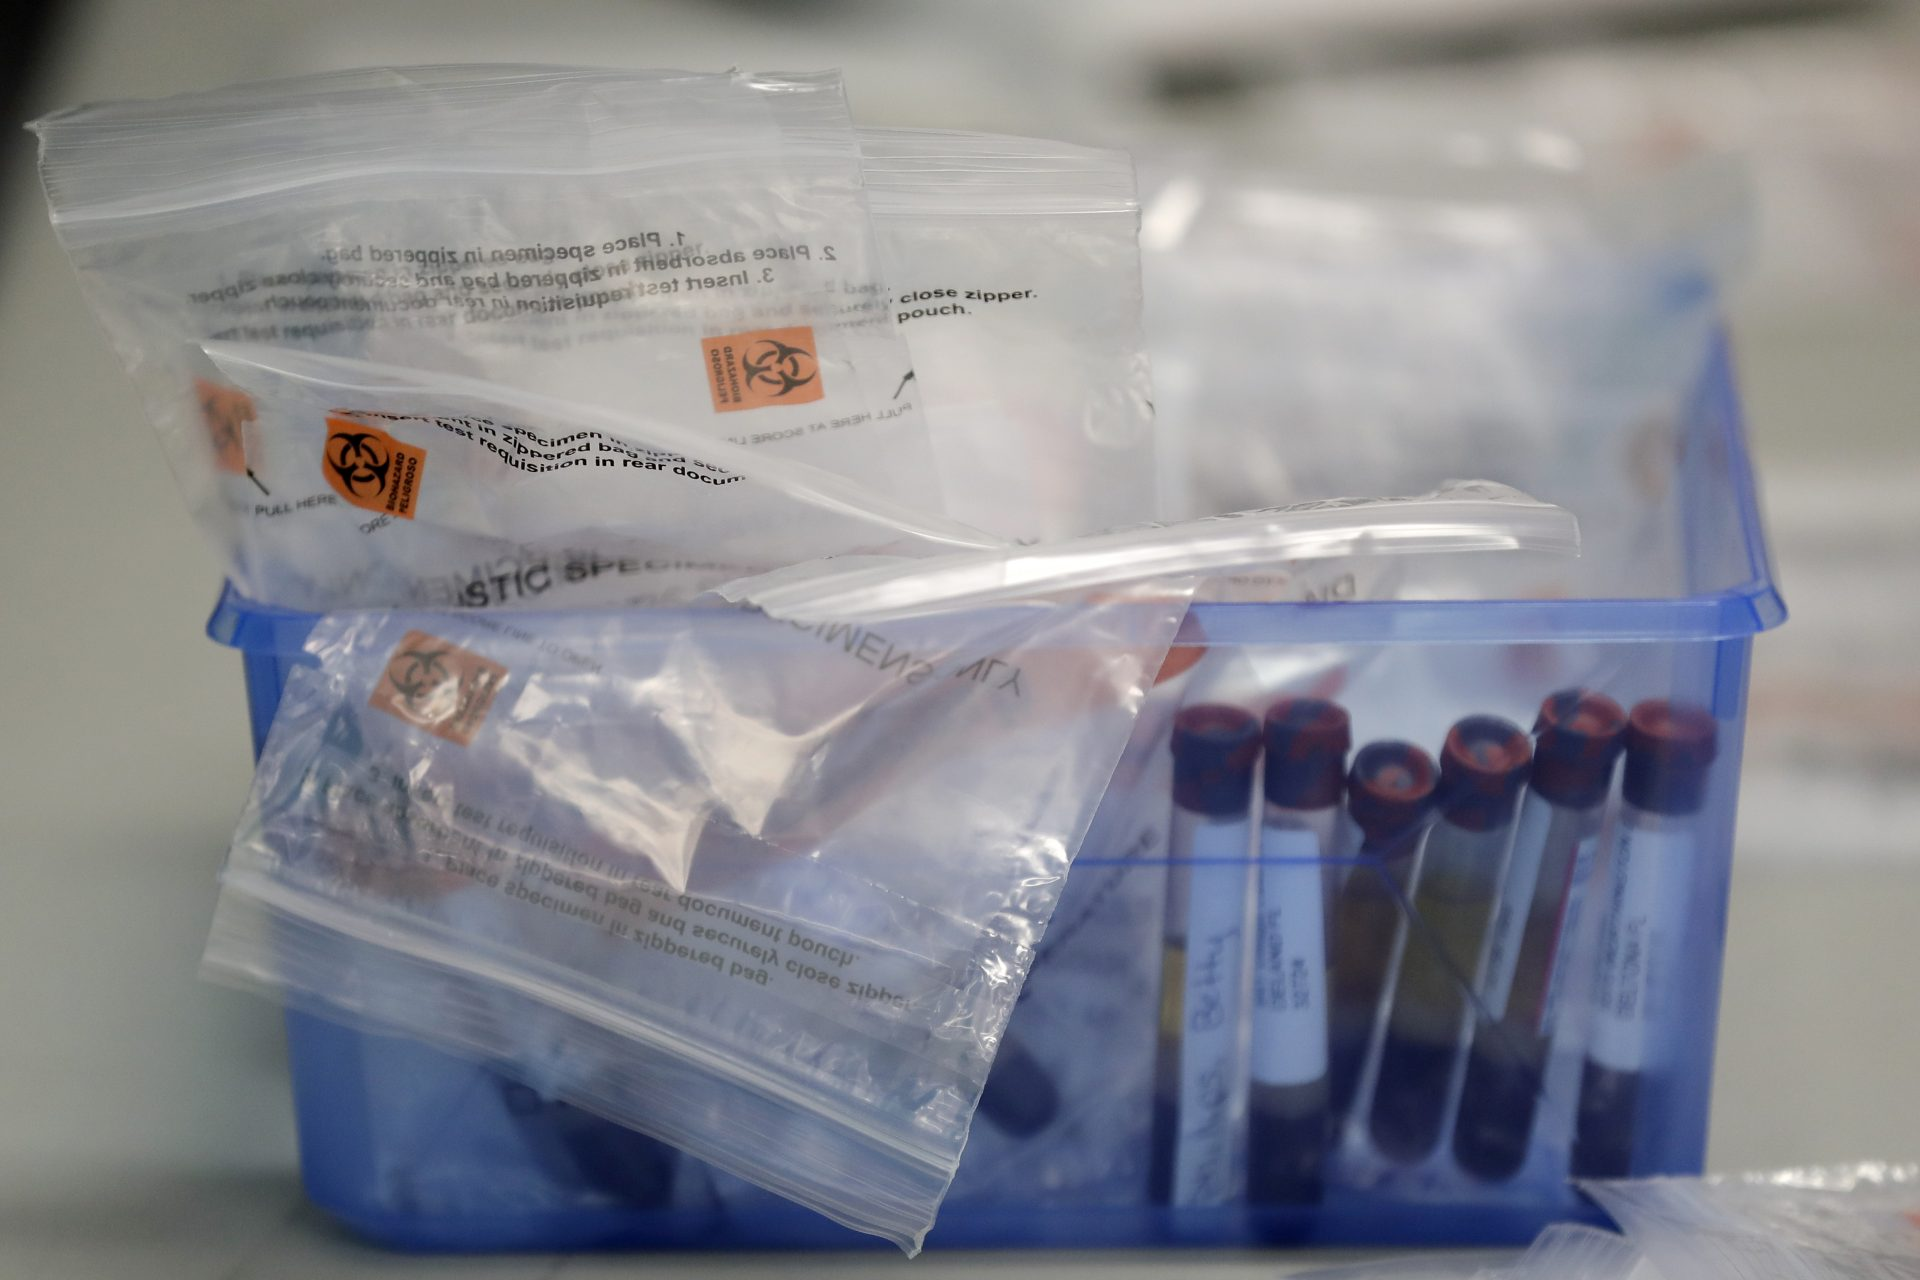 Before being sent to a lab, blood samples from COVID-19 antibody tests are packed in a container at the Volusia County Fairgrounds Tuesday, May 5, 2020, in DeLand, Fla.